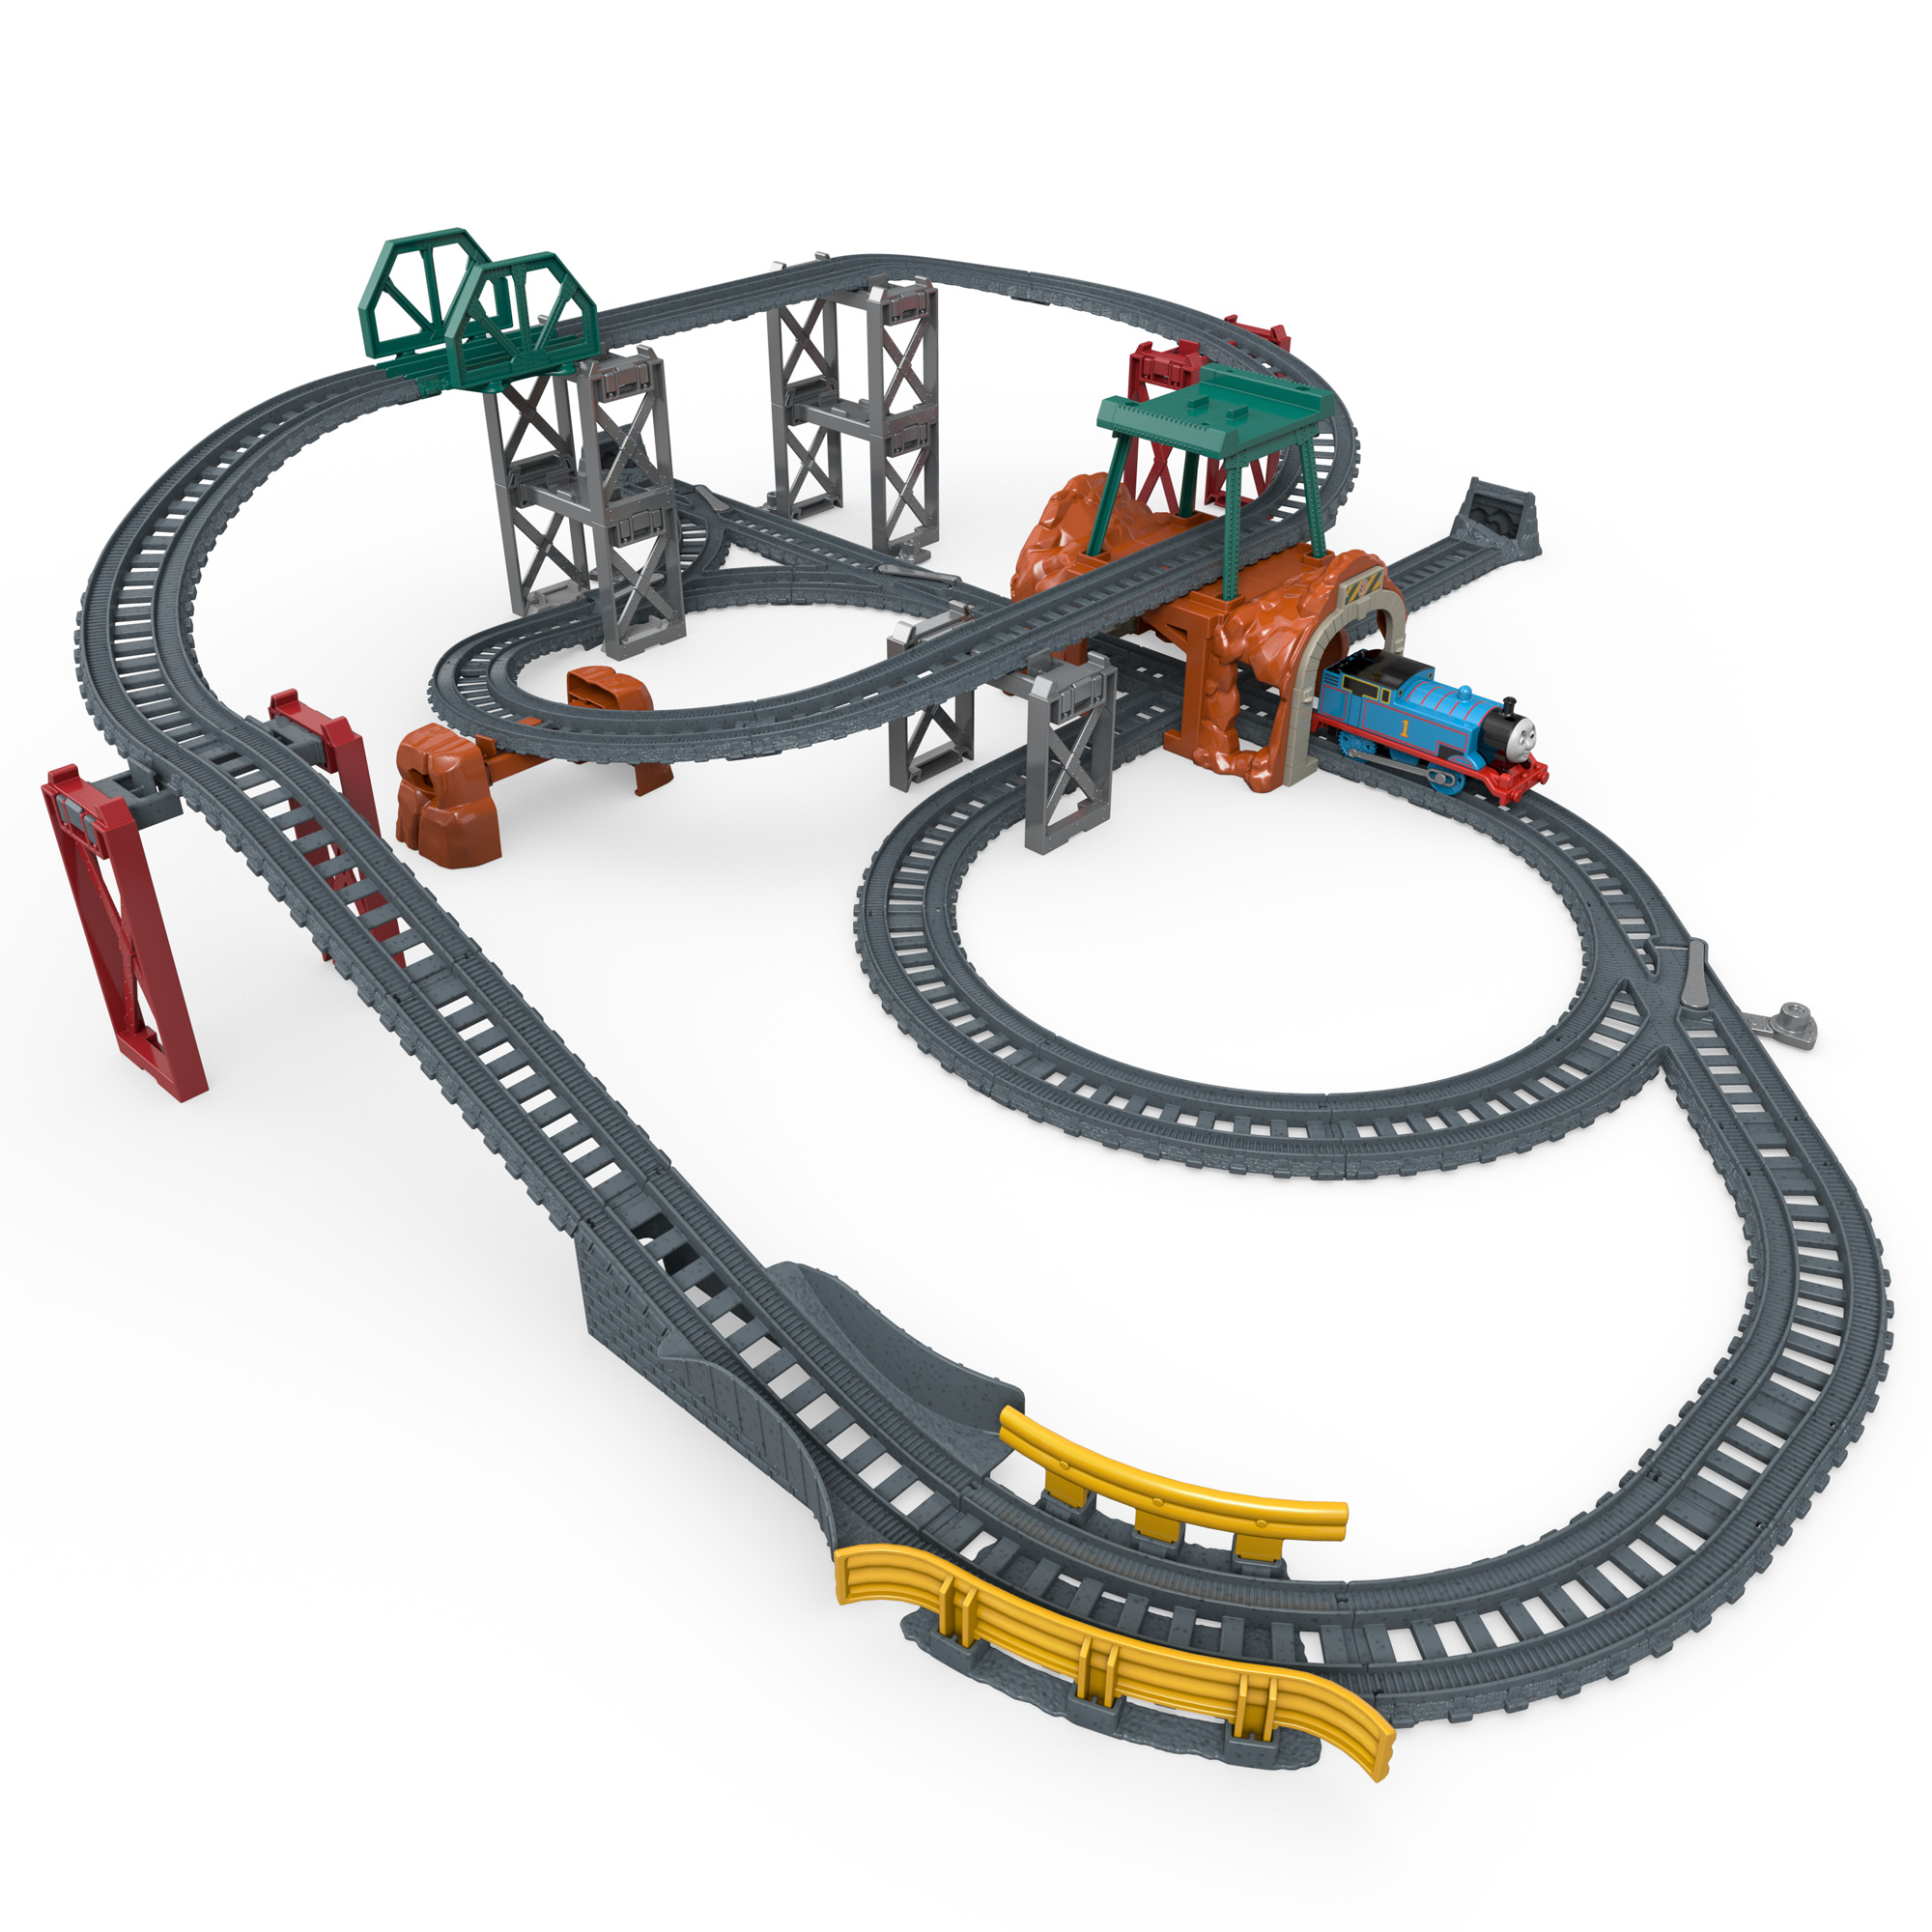 Thomas & Friends TrackMaster 5-in-1 Track Builder Set by FISHER PRICE